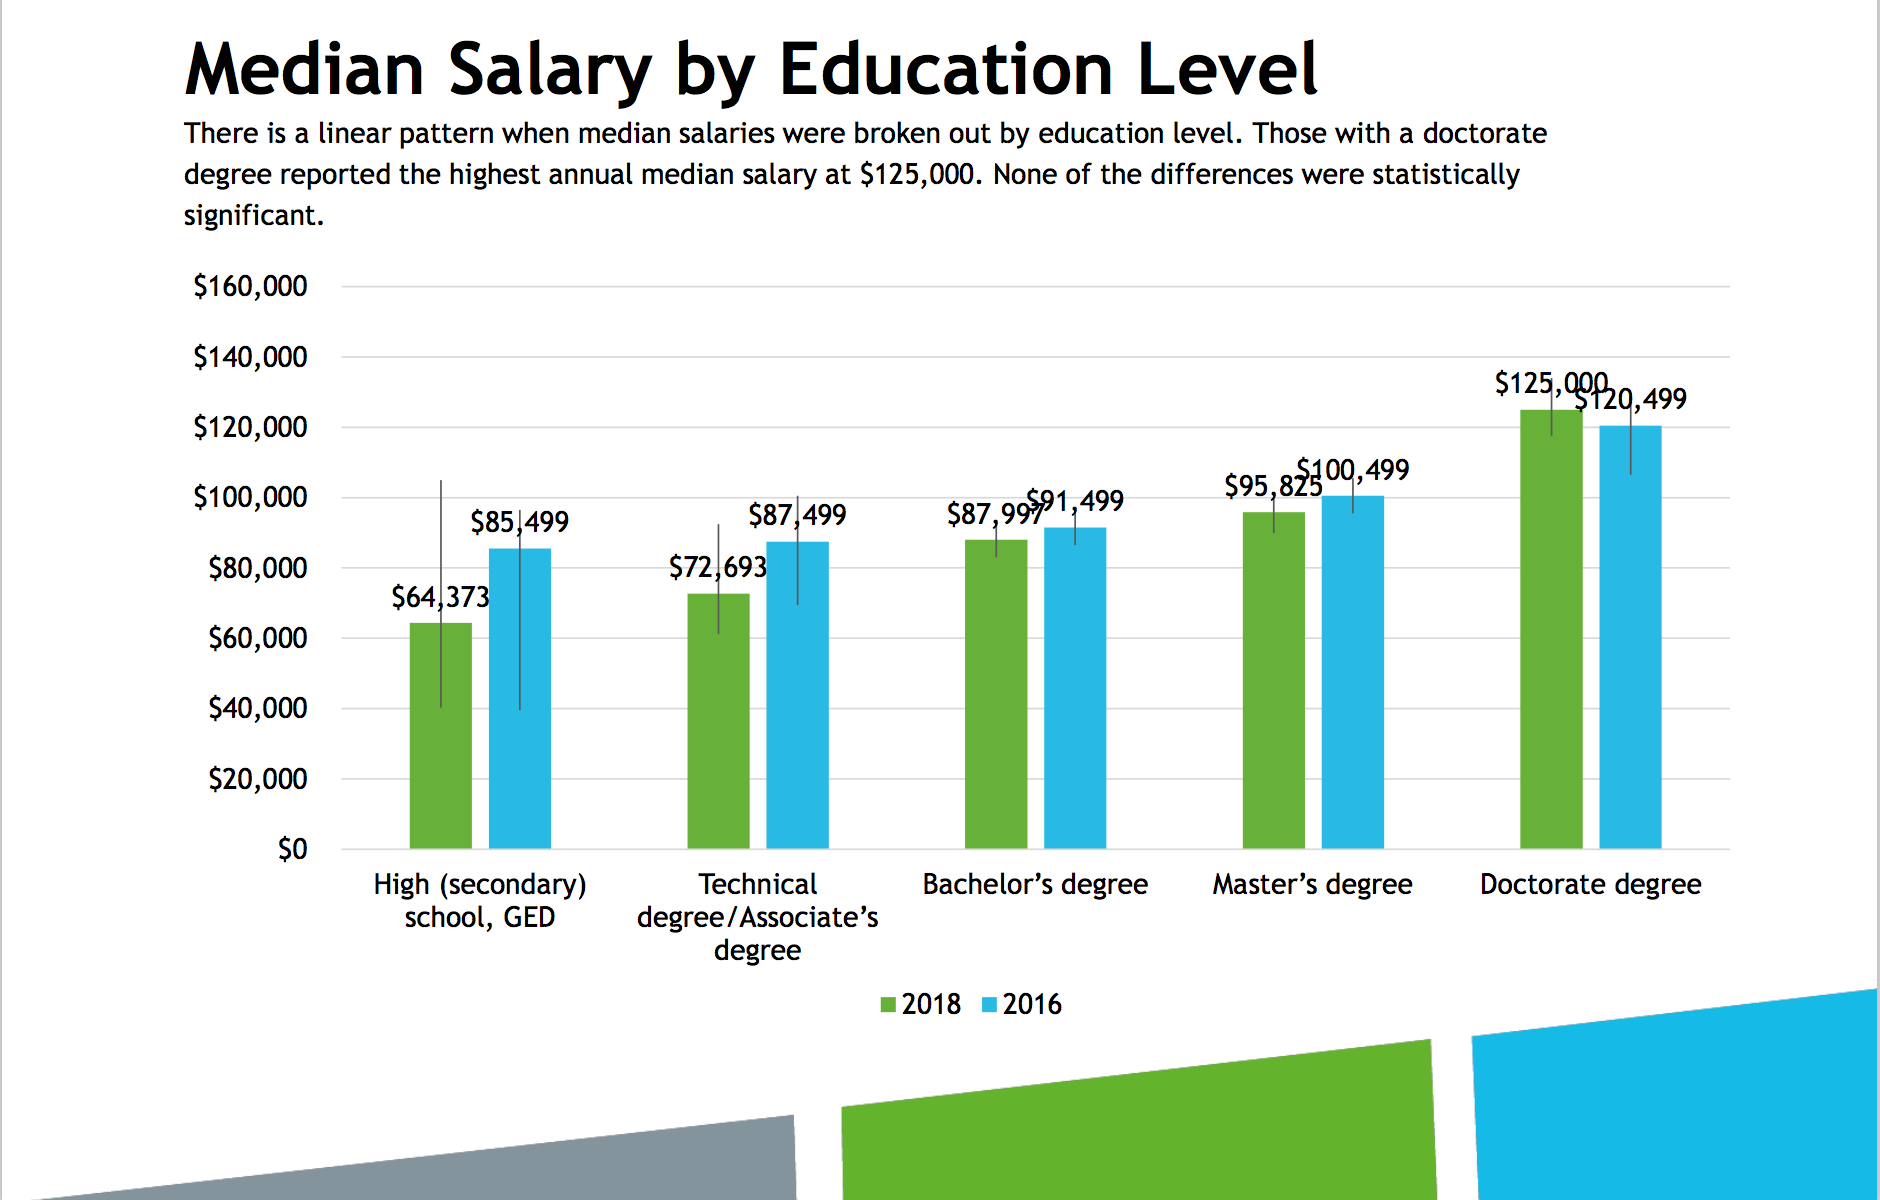 bar chart showing difference in salary by education level as compared to the 2016 survey